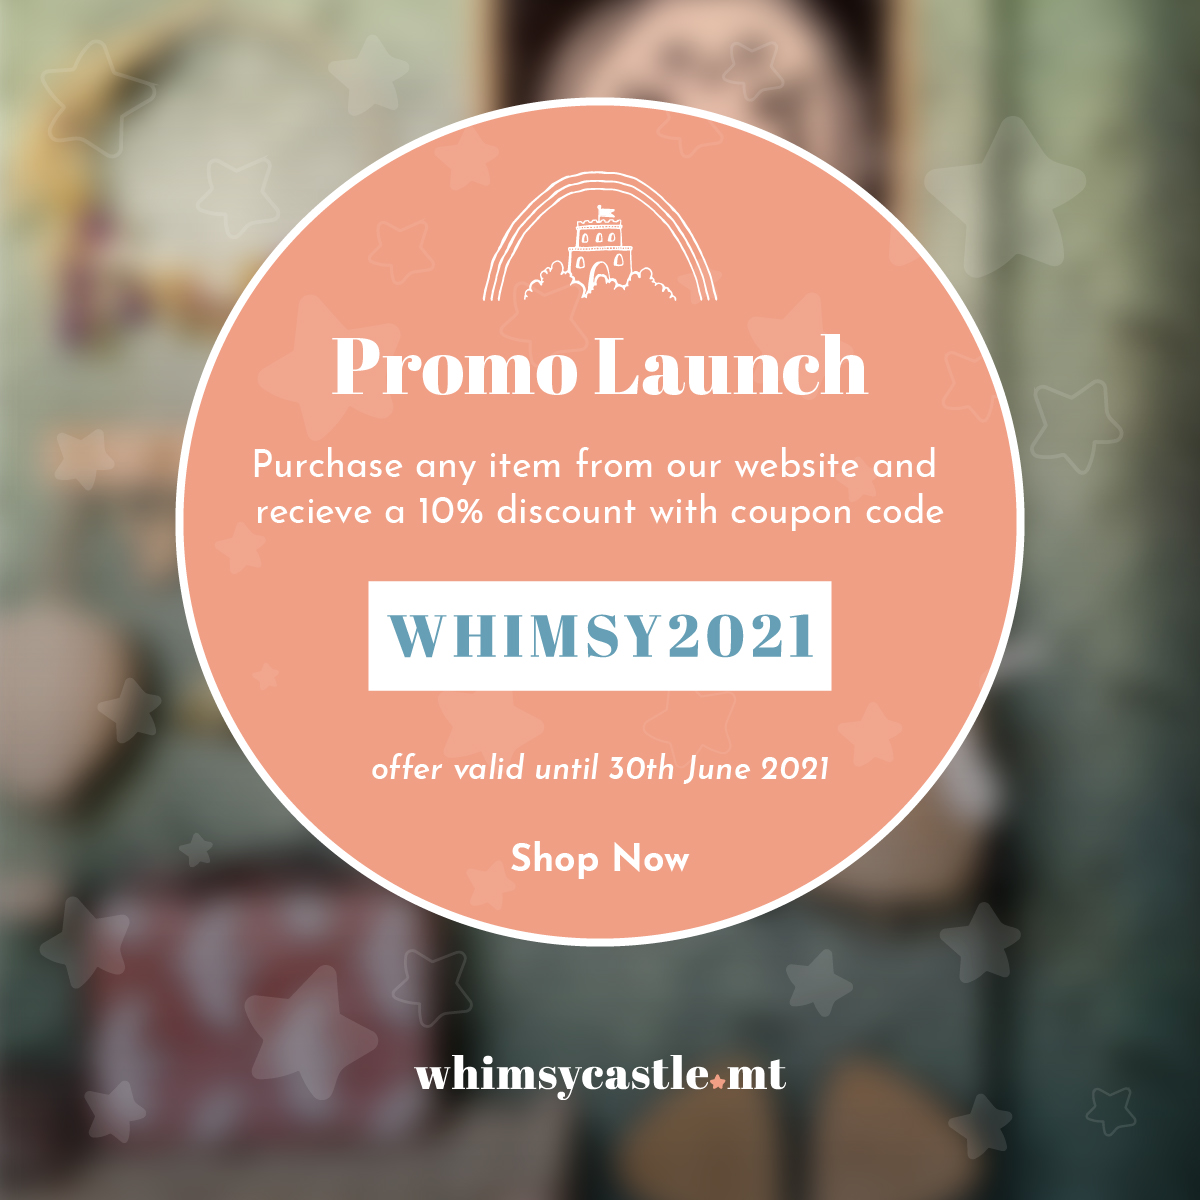 Promo Launch - Whimsy Castle: A collaboration between two great friends!